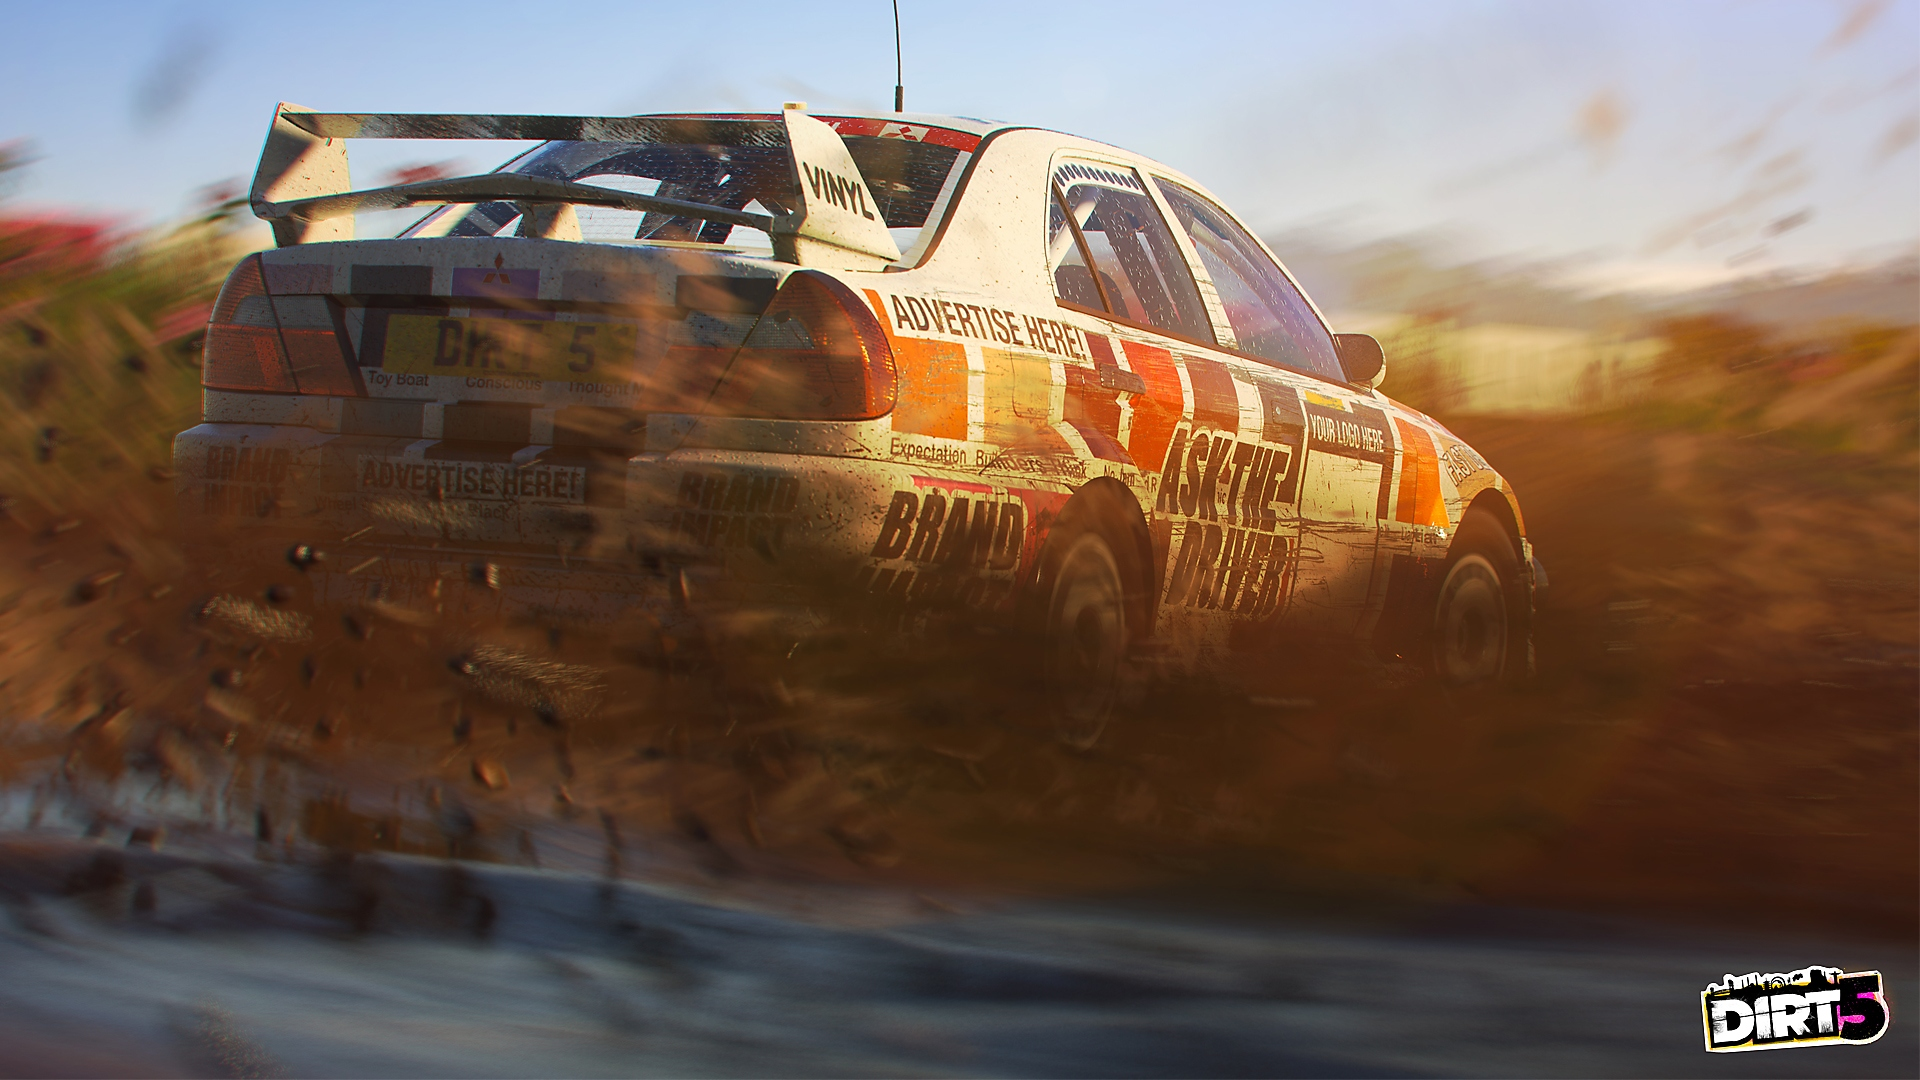 Captura de pantalla de Dirt 5